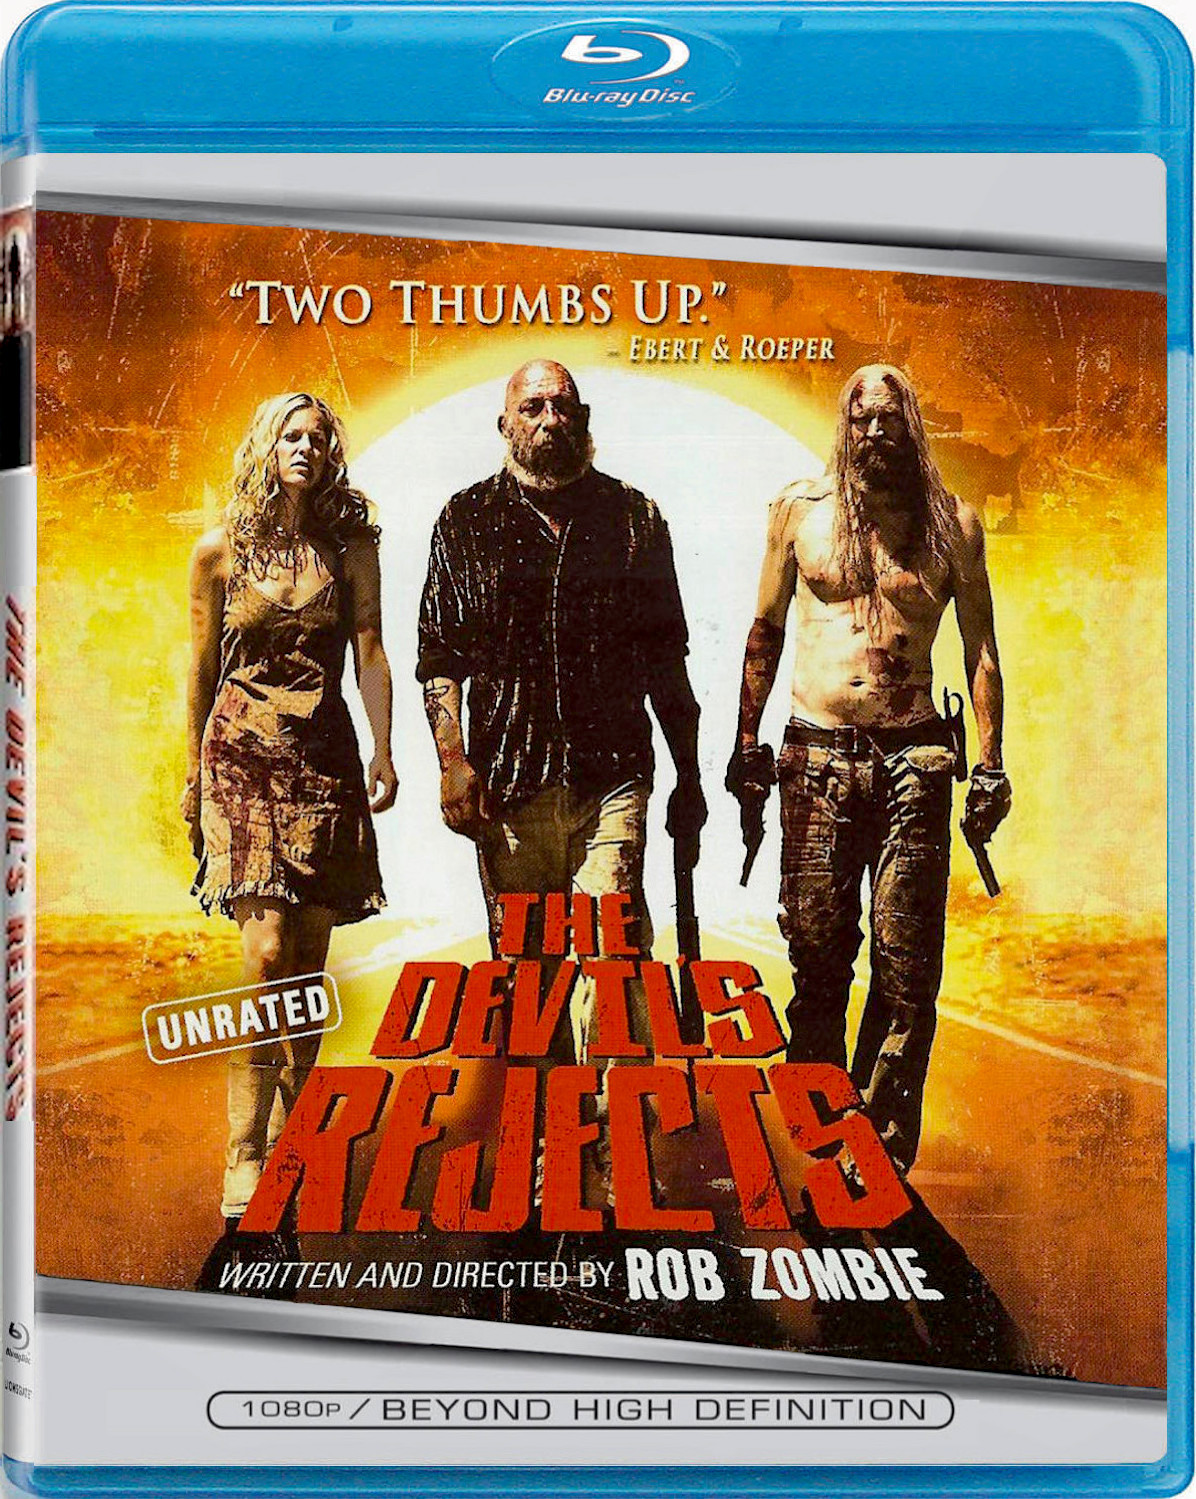 18+The Devil's Rejects 2005 Hindi Dual Audio 720p UNRATED BluRay ESubs 1.1GB | 400MB Download